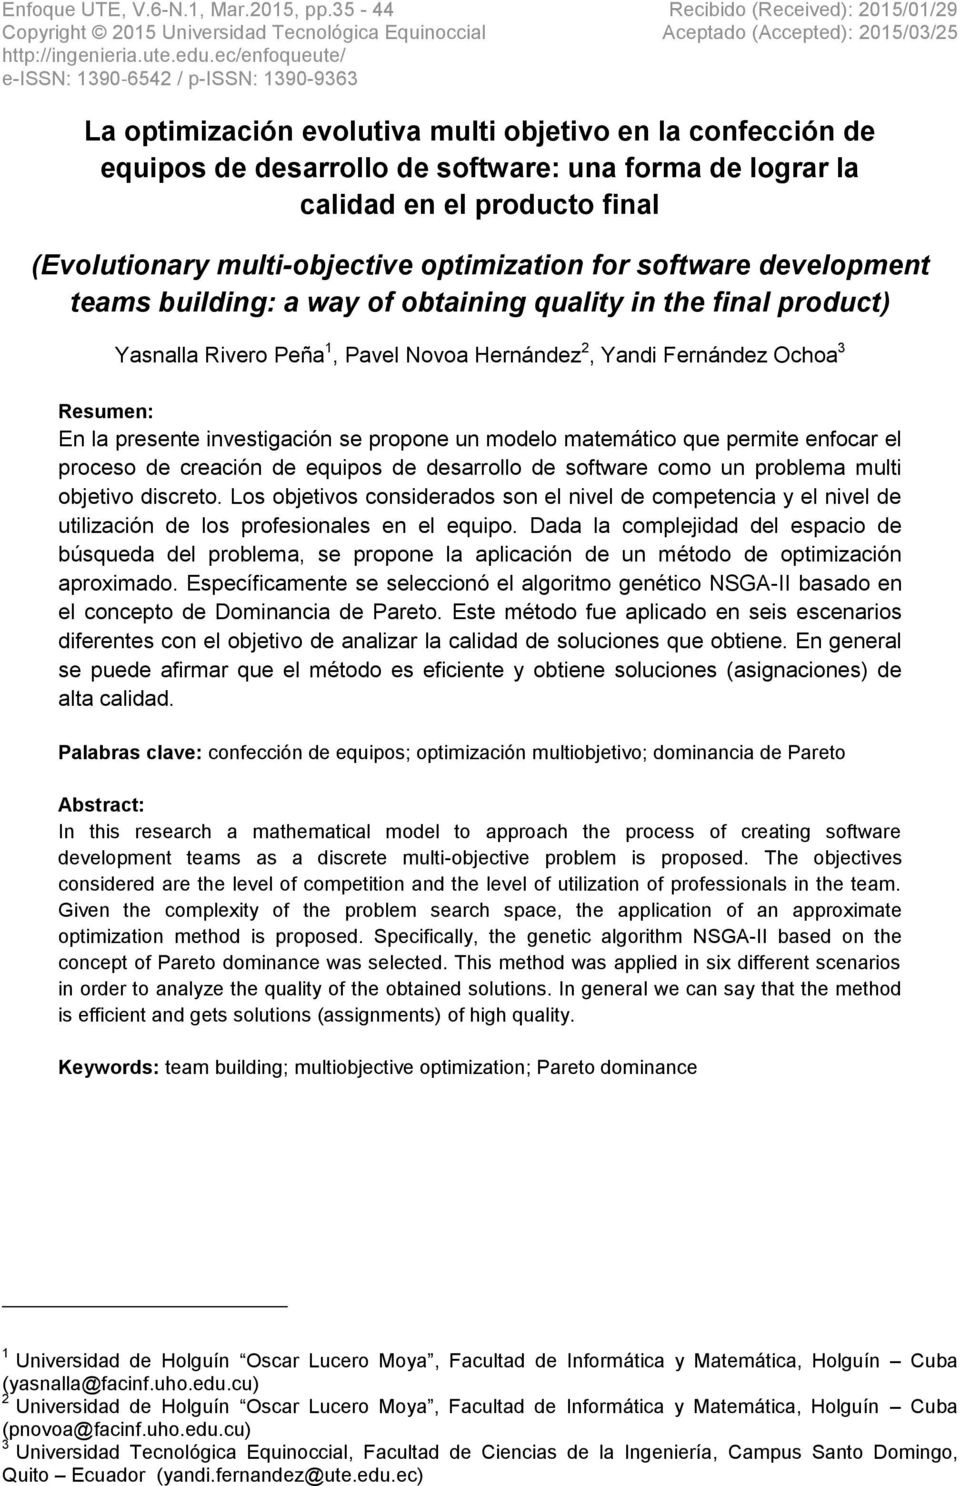 de software: una forma de lograr la calidad en el producto final (Evolutionary multi-objective optimization for software development teams building: a way of obtaining quality in the final product)